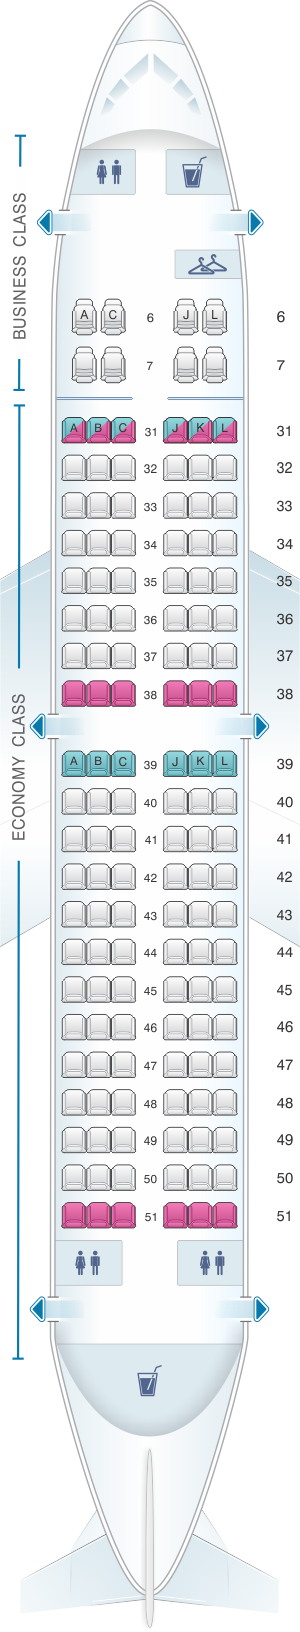 Seat map for China Eastern Airlines Boeing B737 700 134PAX